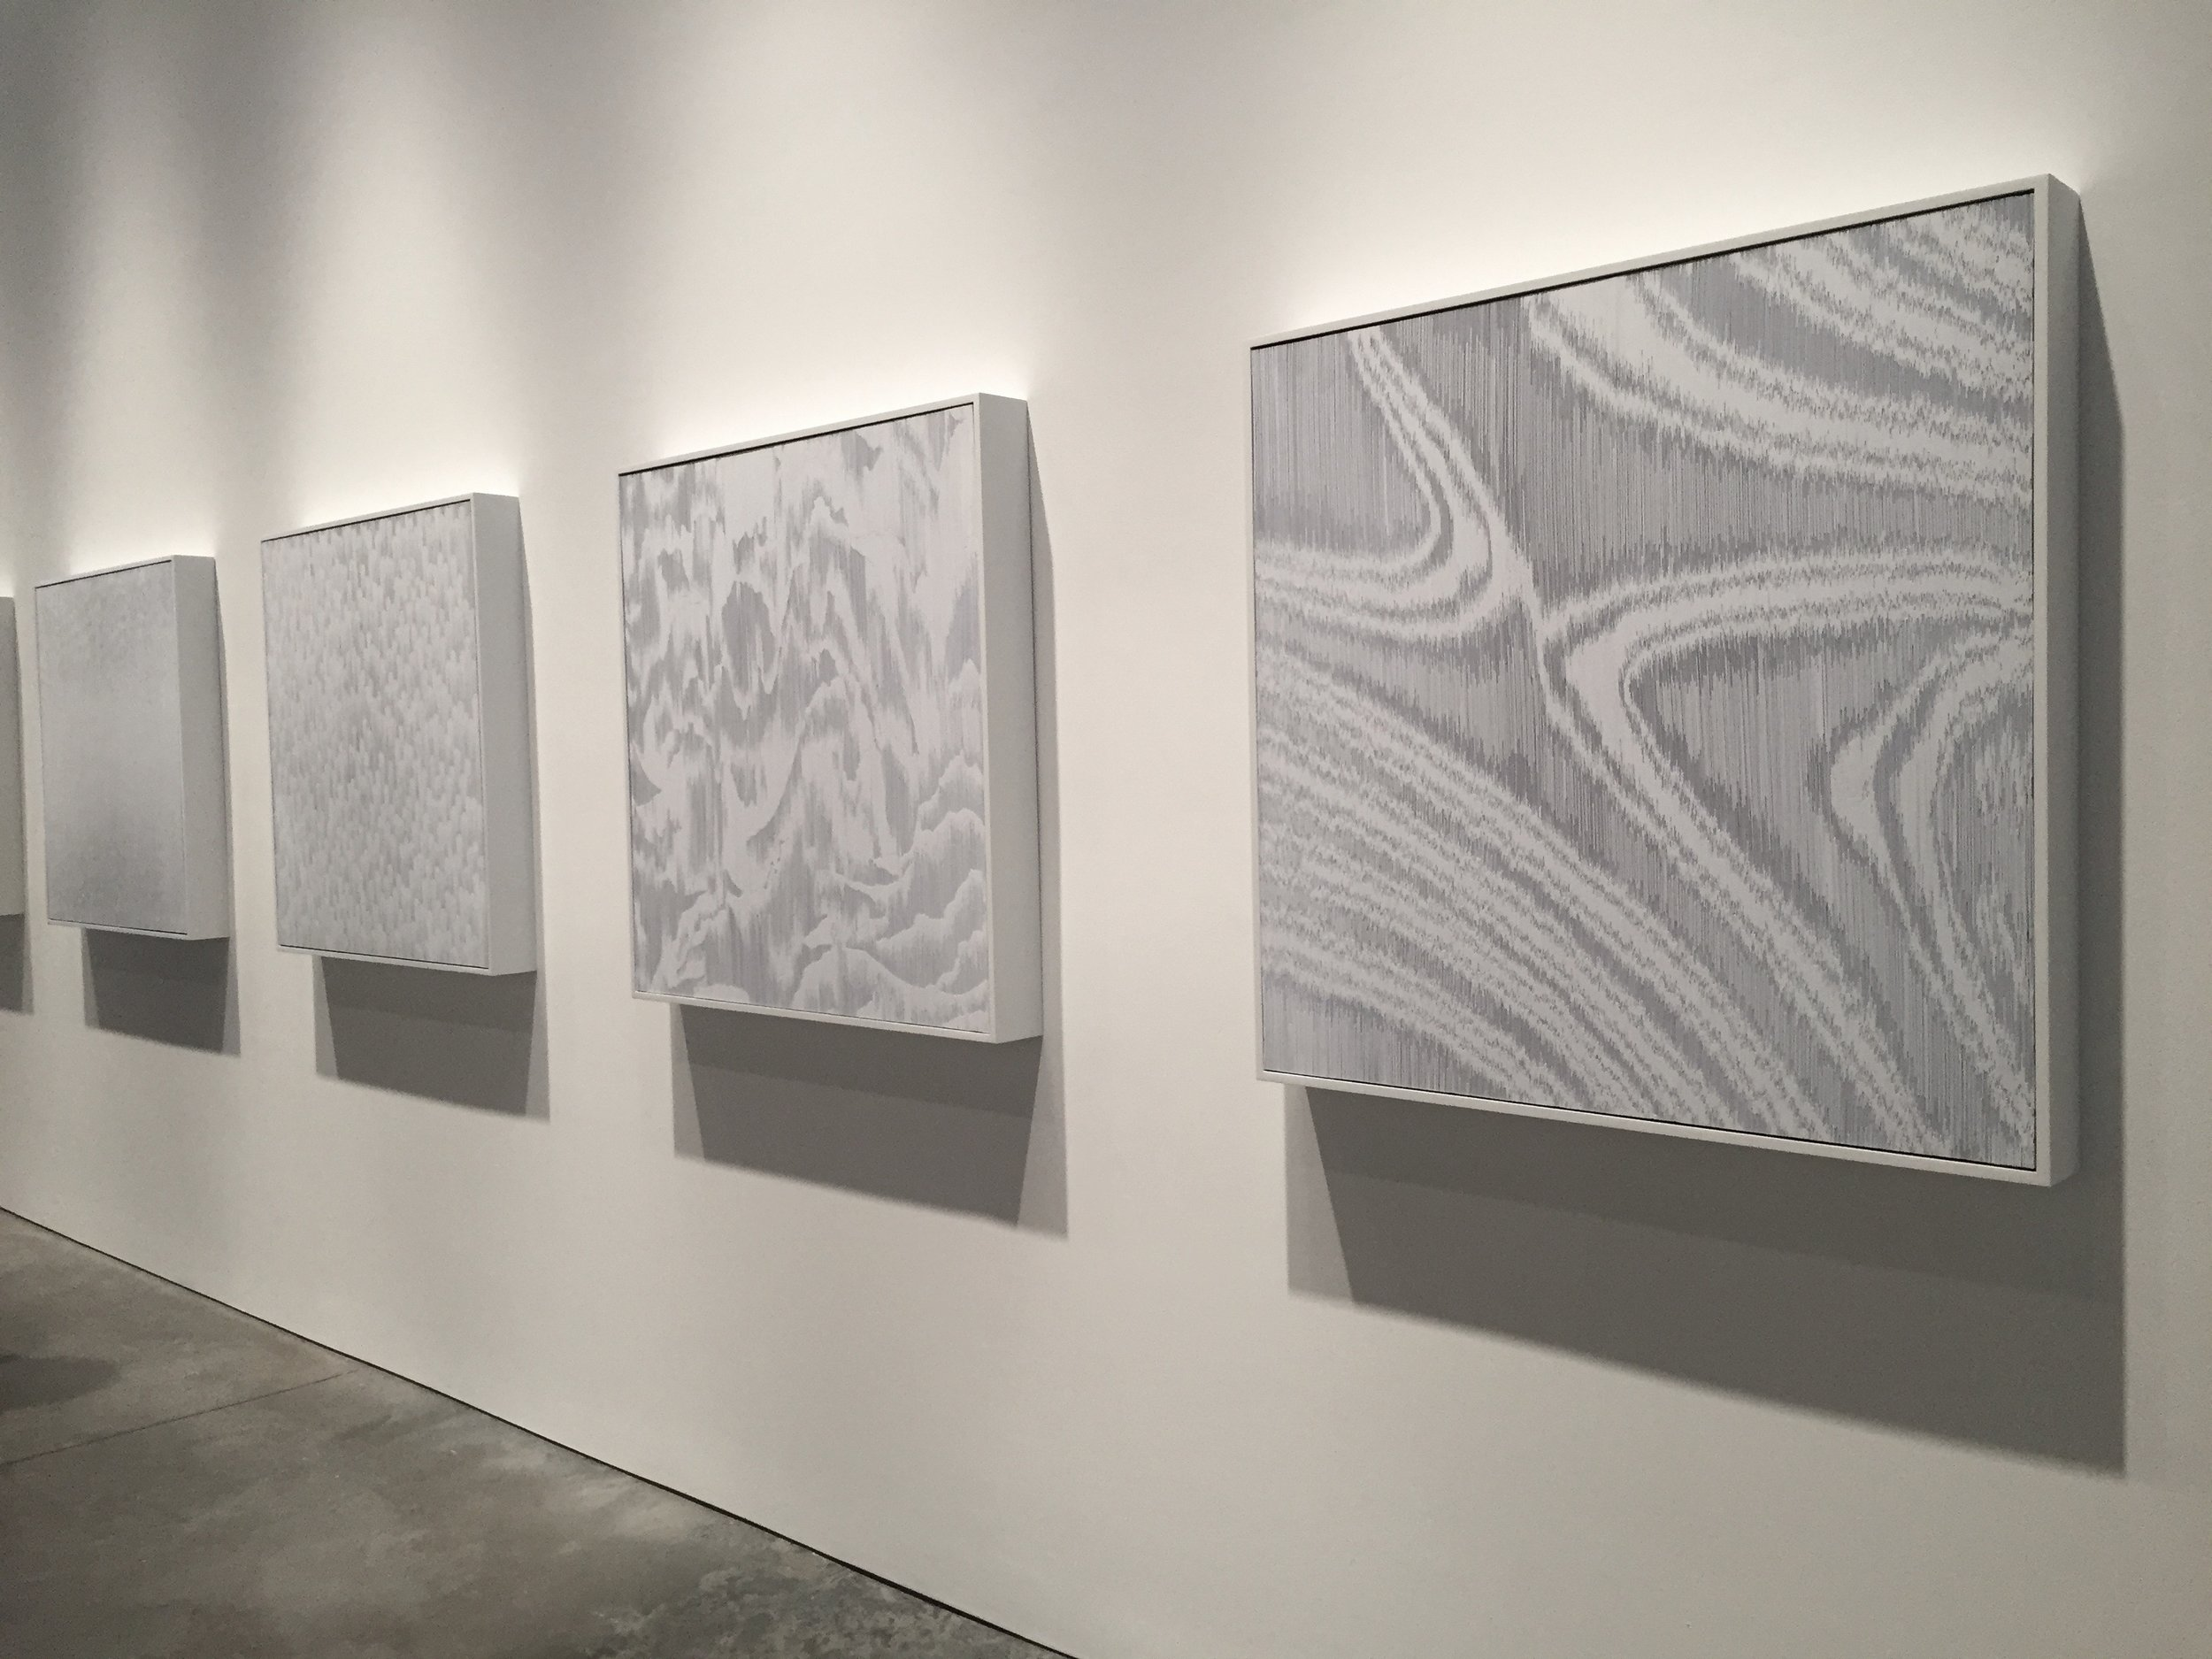 Tara Donovan, Installation View, Pace Gallery (February 17, 2017 – March 18, 2017)